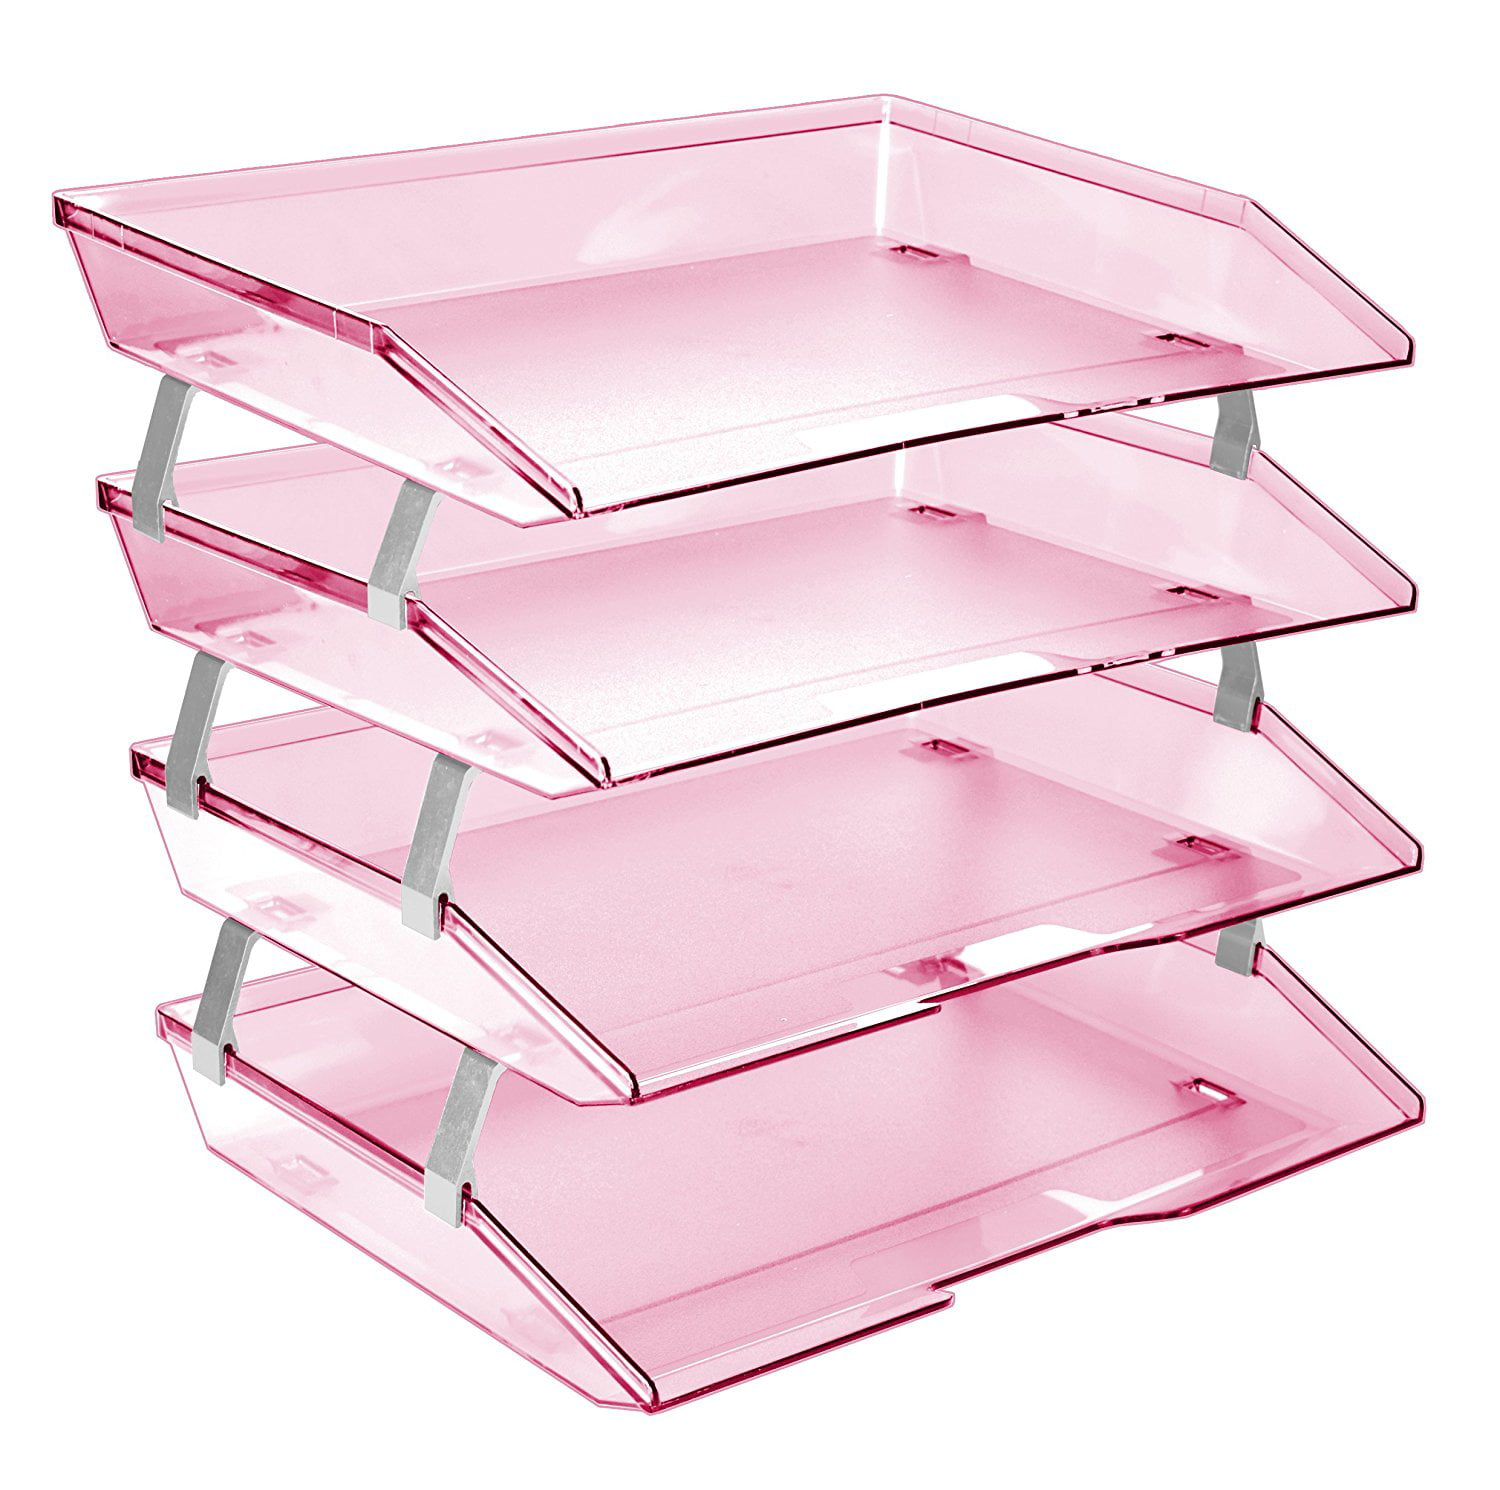 Acrimet Facility Letter Tray 4 Tiers (Clear Pink Color) by Acrimet